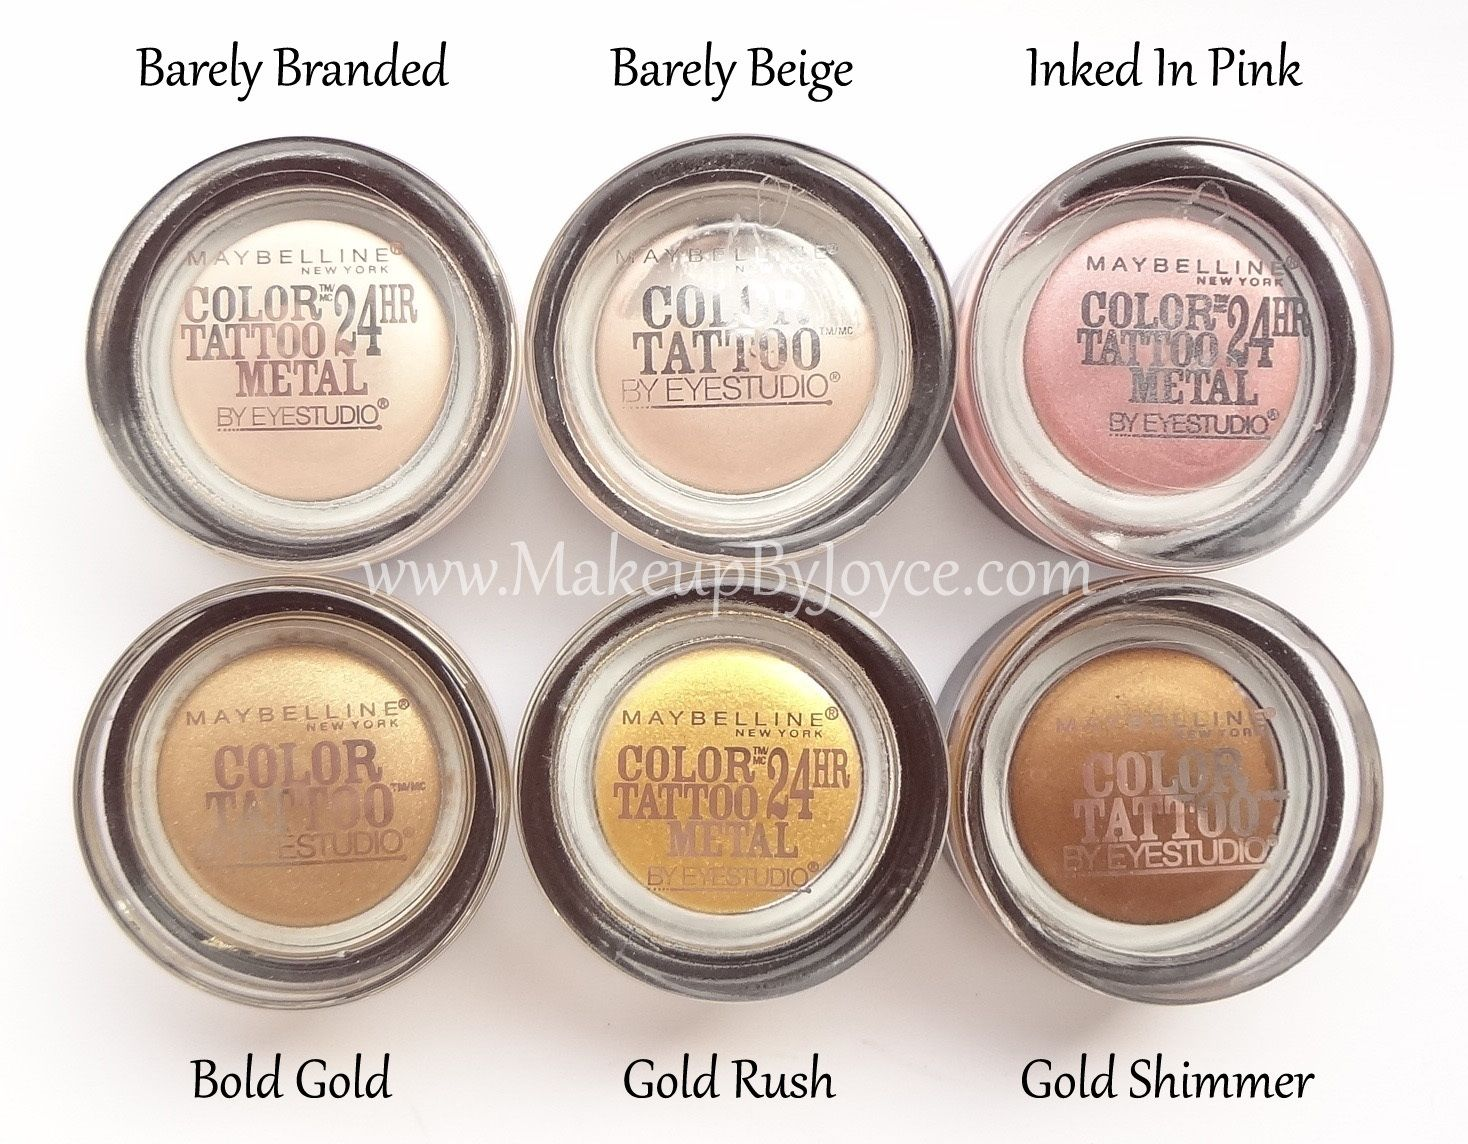 Maybelline Barely Branded Barely Beige Inked In Pink Gold Rush Jpg 1468 1144 Maybelline Color Tattoo Gel Eyeshadow Color Tattoo Eyeshadow